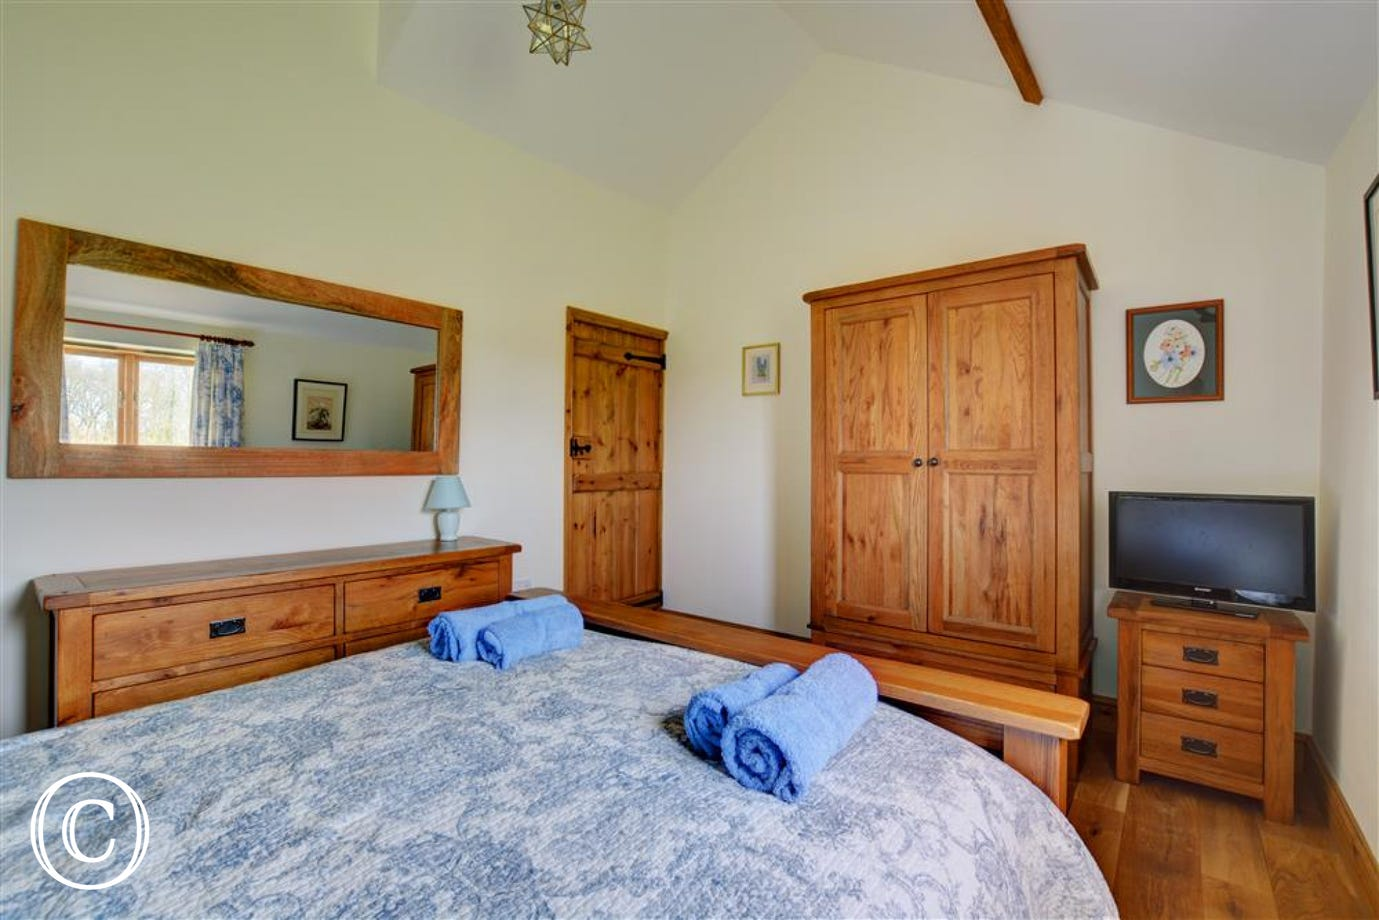 Double bed and storage available in bedroom 1